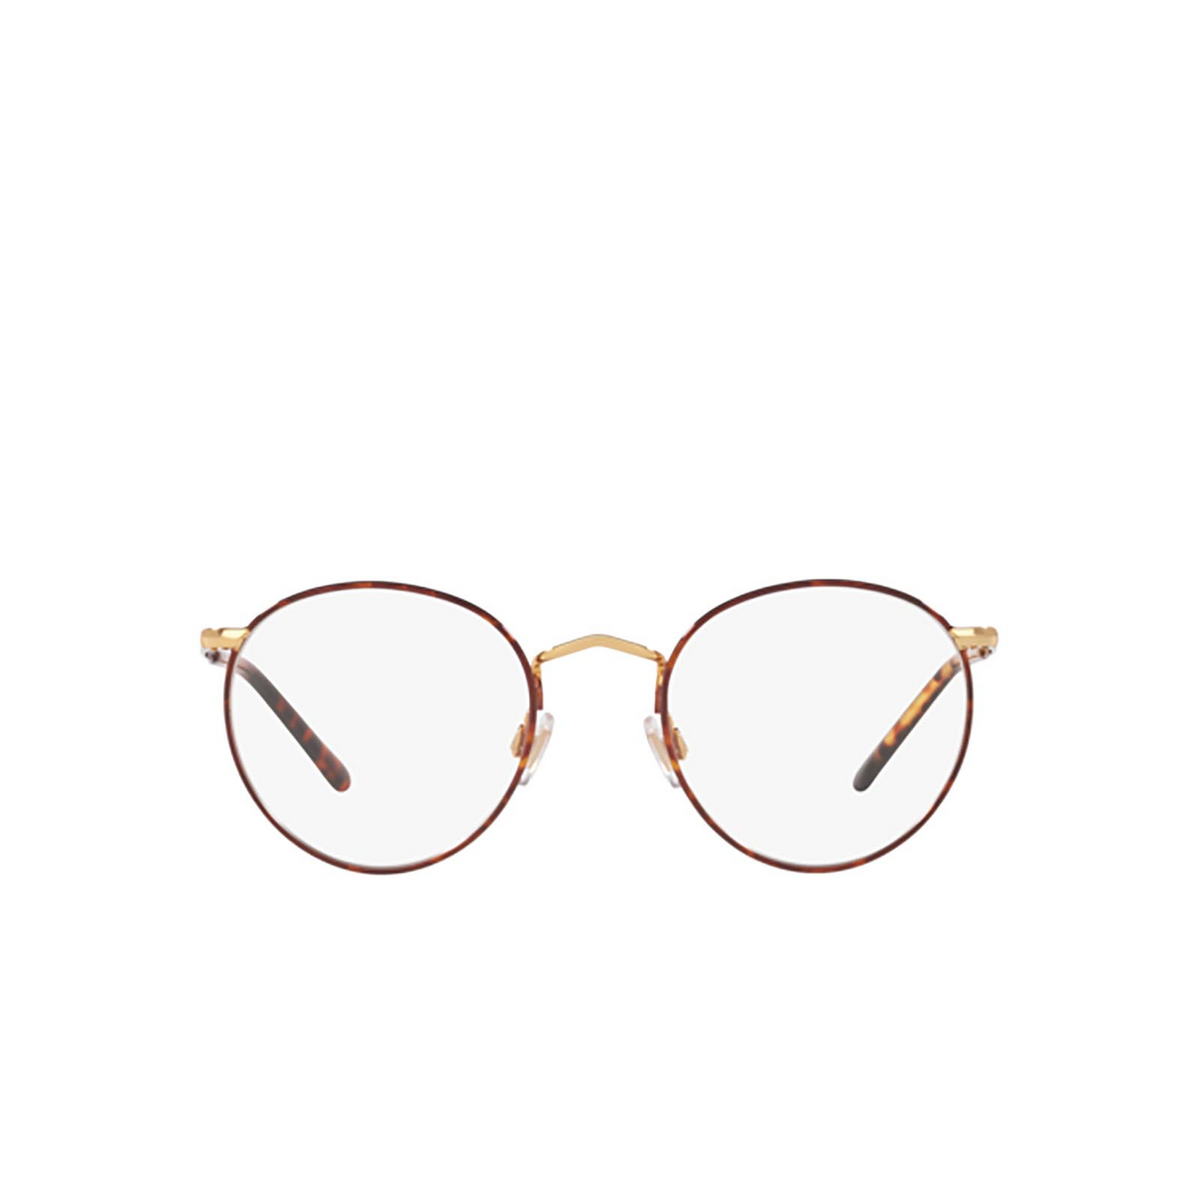 Polo Ralph Lauren® Round Eyeglasses: PH1179 color Havana On Shiny Gold 9384 - front view.